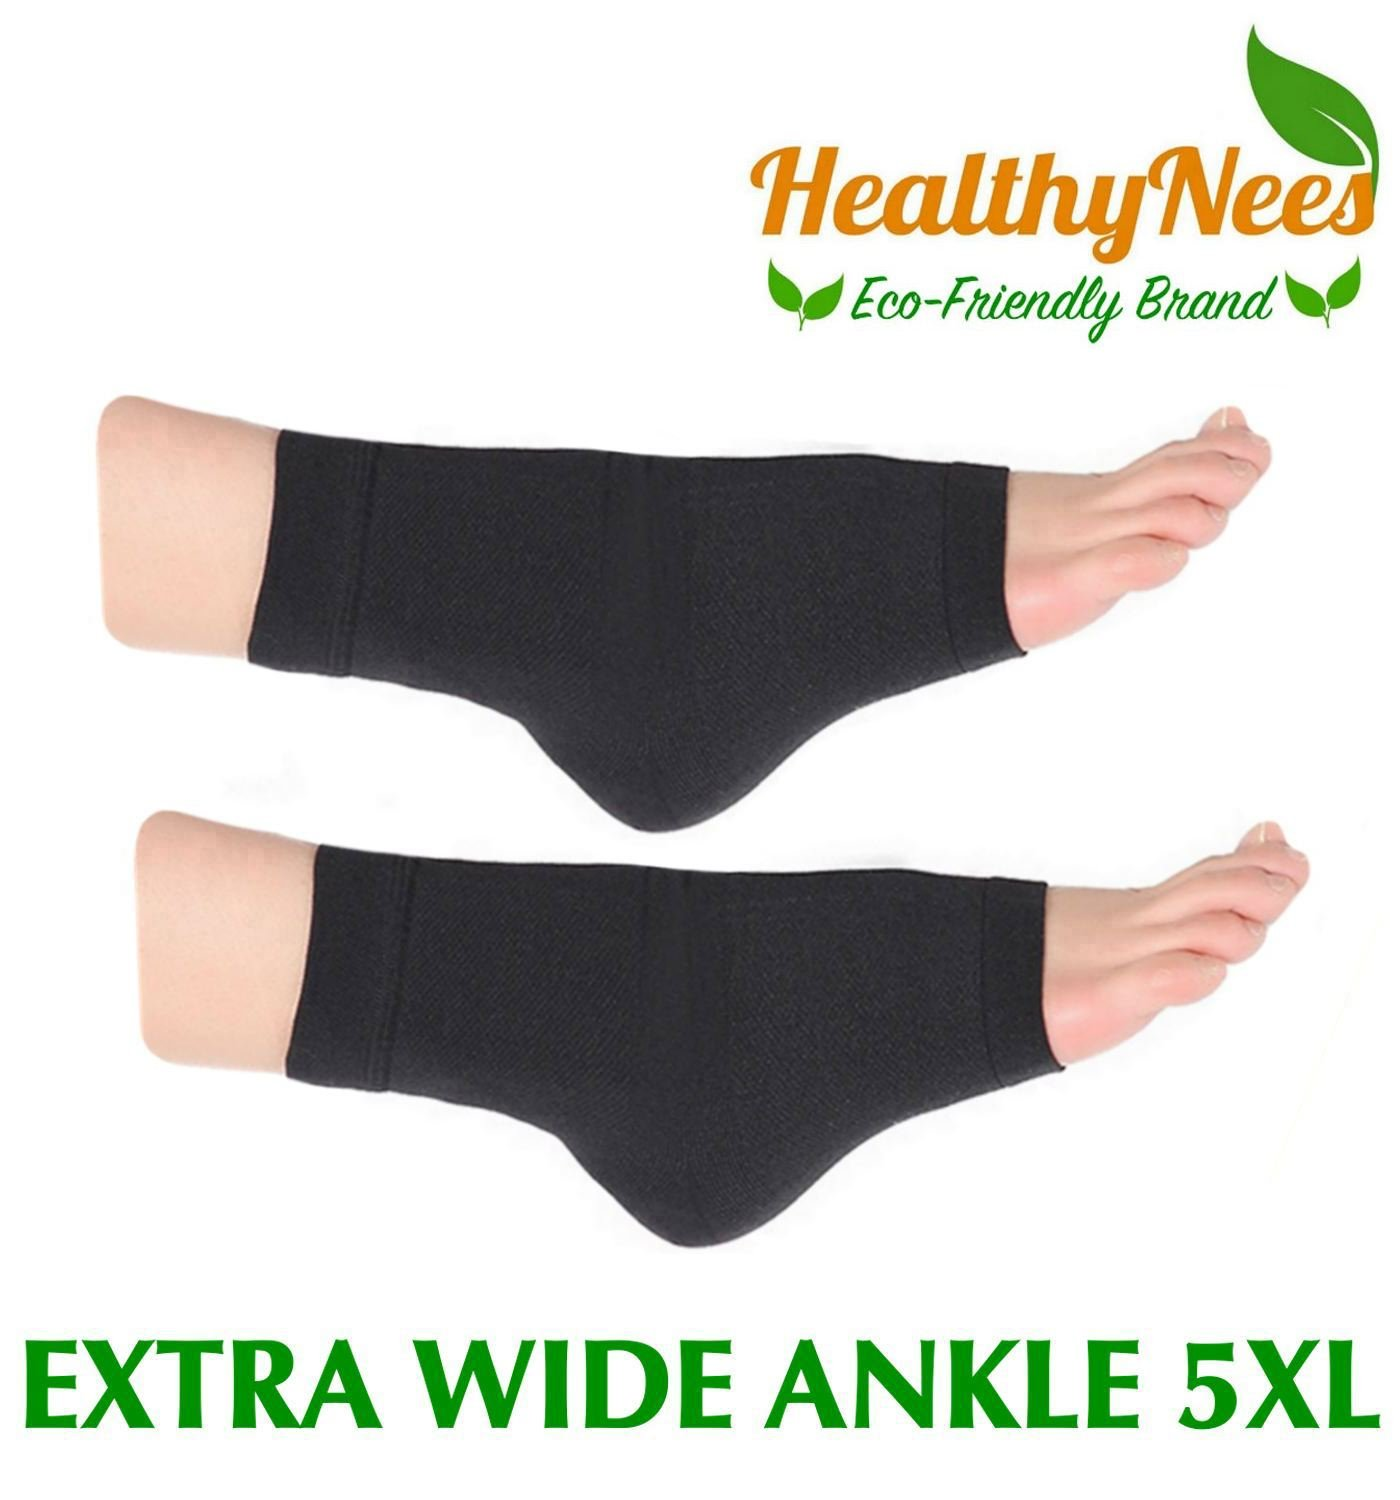 HealthyNees Extra Wide Ankle Big Feet 20-30 mmHg Compression Swelling Foot Pain Circulation Plus Size Sock Open Toe Sleeve (Black, Extra Wide Ankle 5XL)